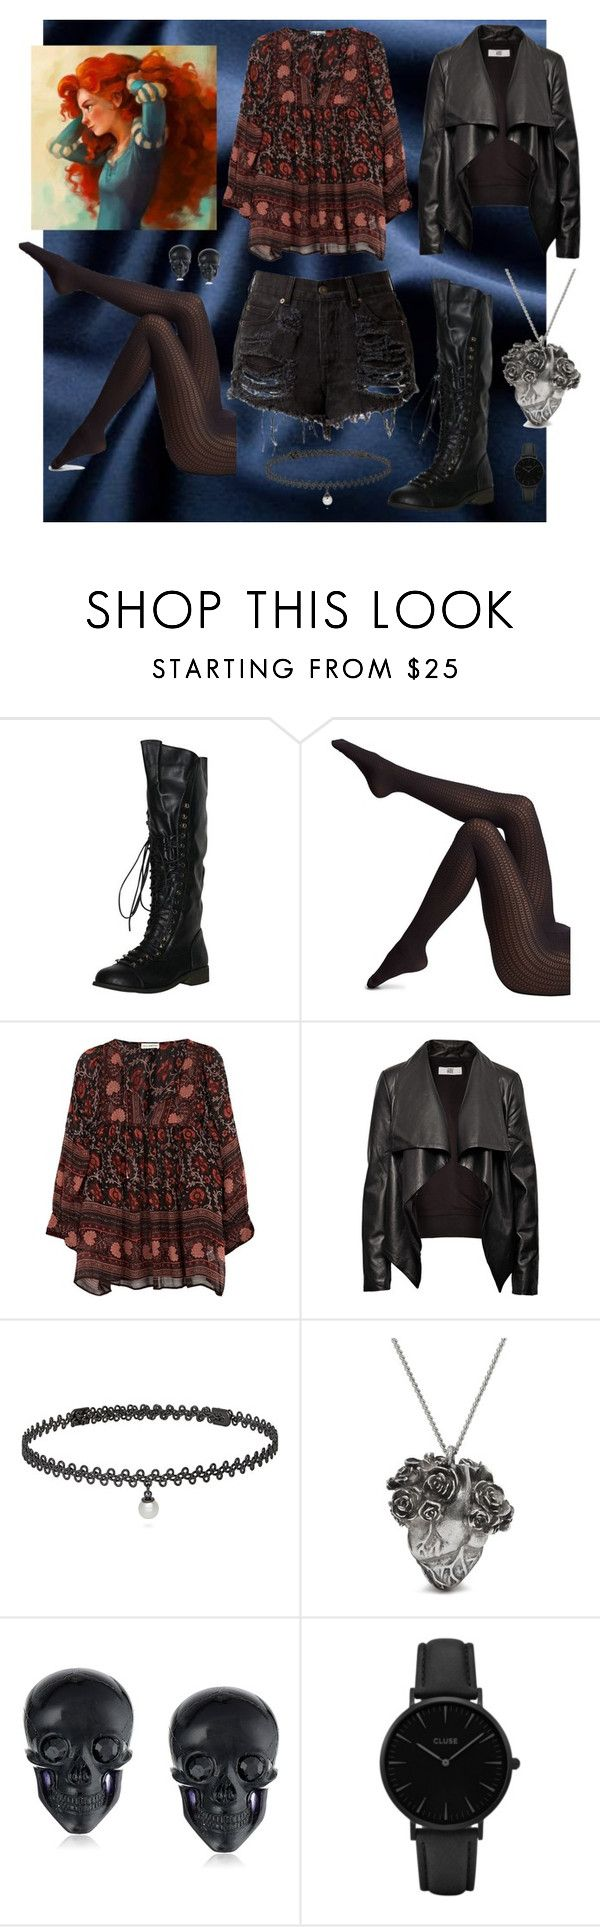 """""""Merida"""" by olallollasmile ❤ liked on Polyvore featuring Wolford, Ulla Johnson, HIDE, BERRICLE, Mulberry, Tarina Tarantino and CLUSE"""